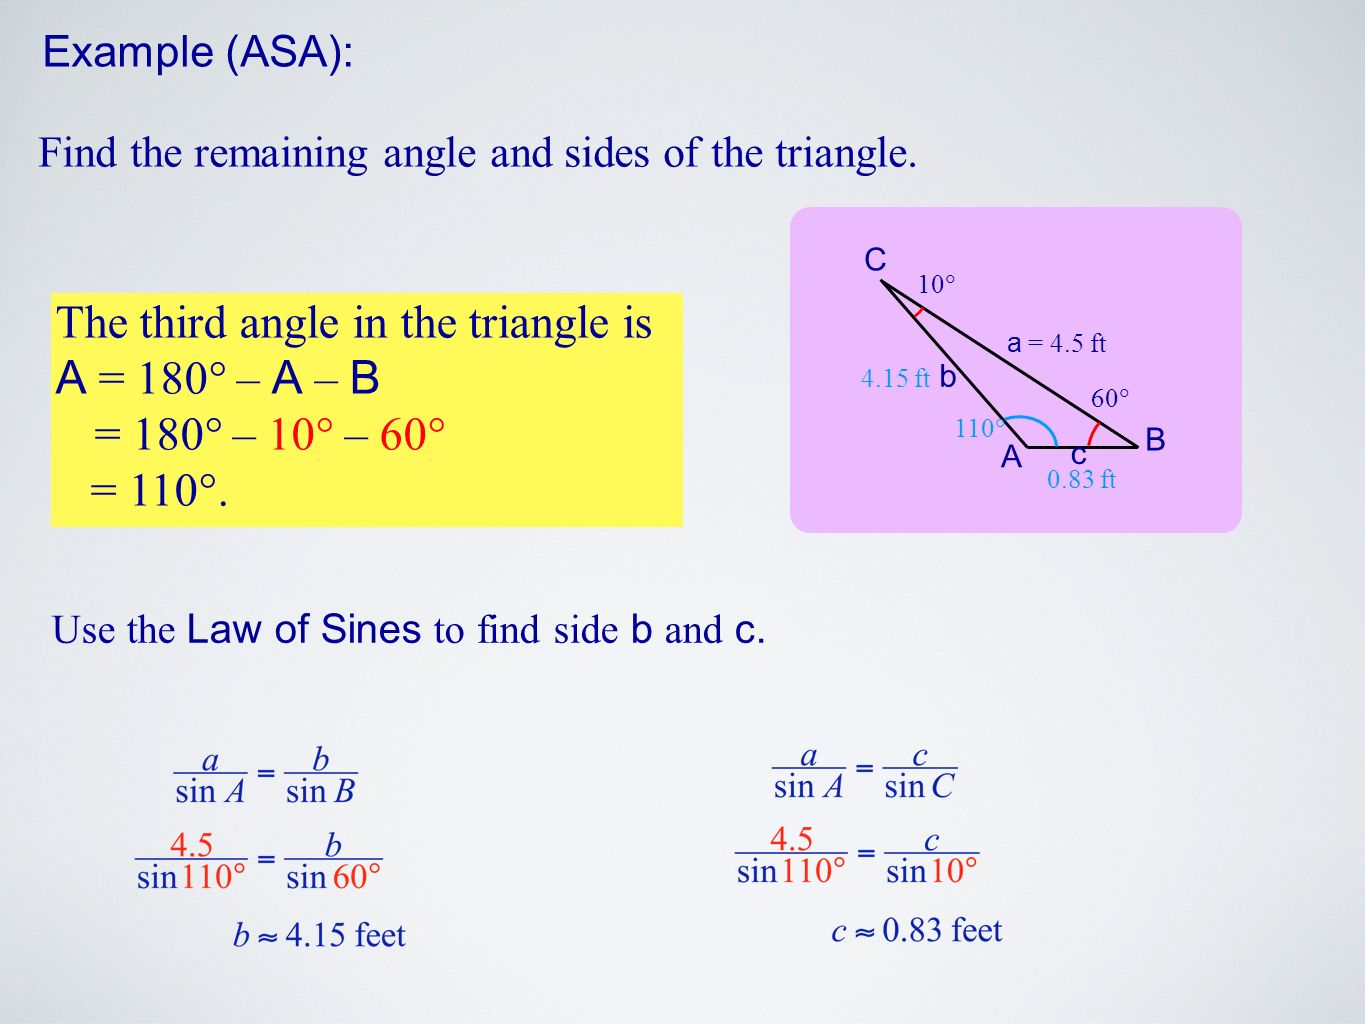 Use the Law of Sines to find side b and c.